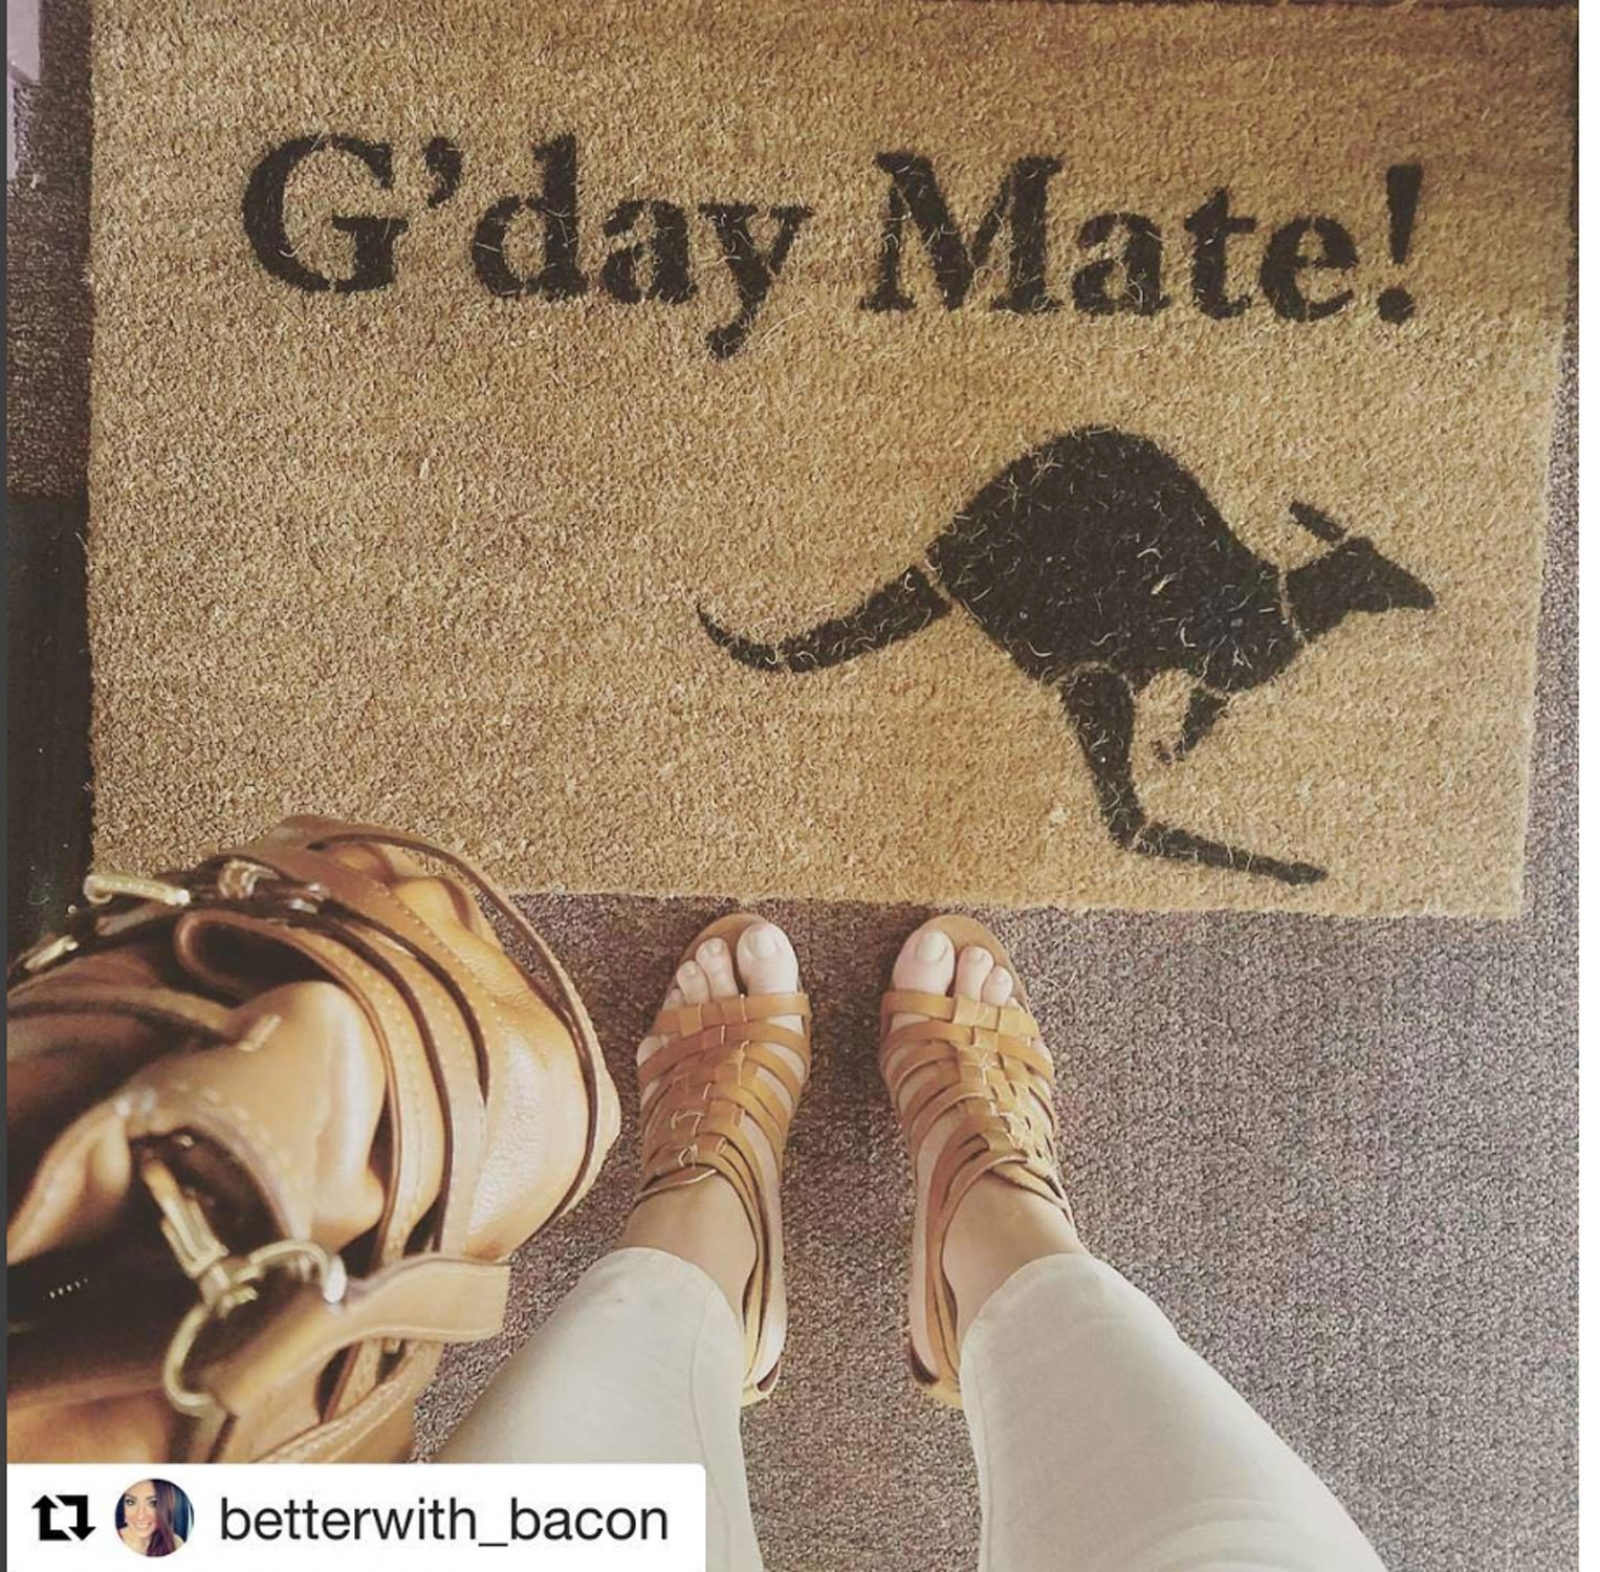 G Day Mate Kangaroo Australian Aussie Doormat By Damn Good